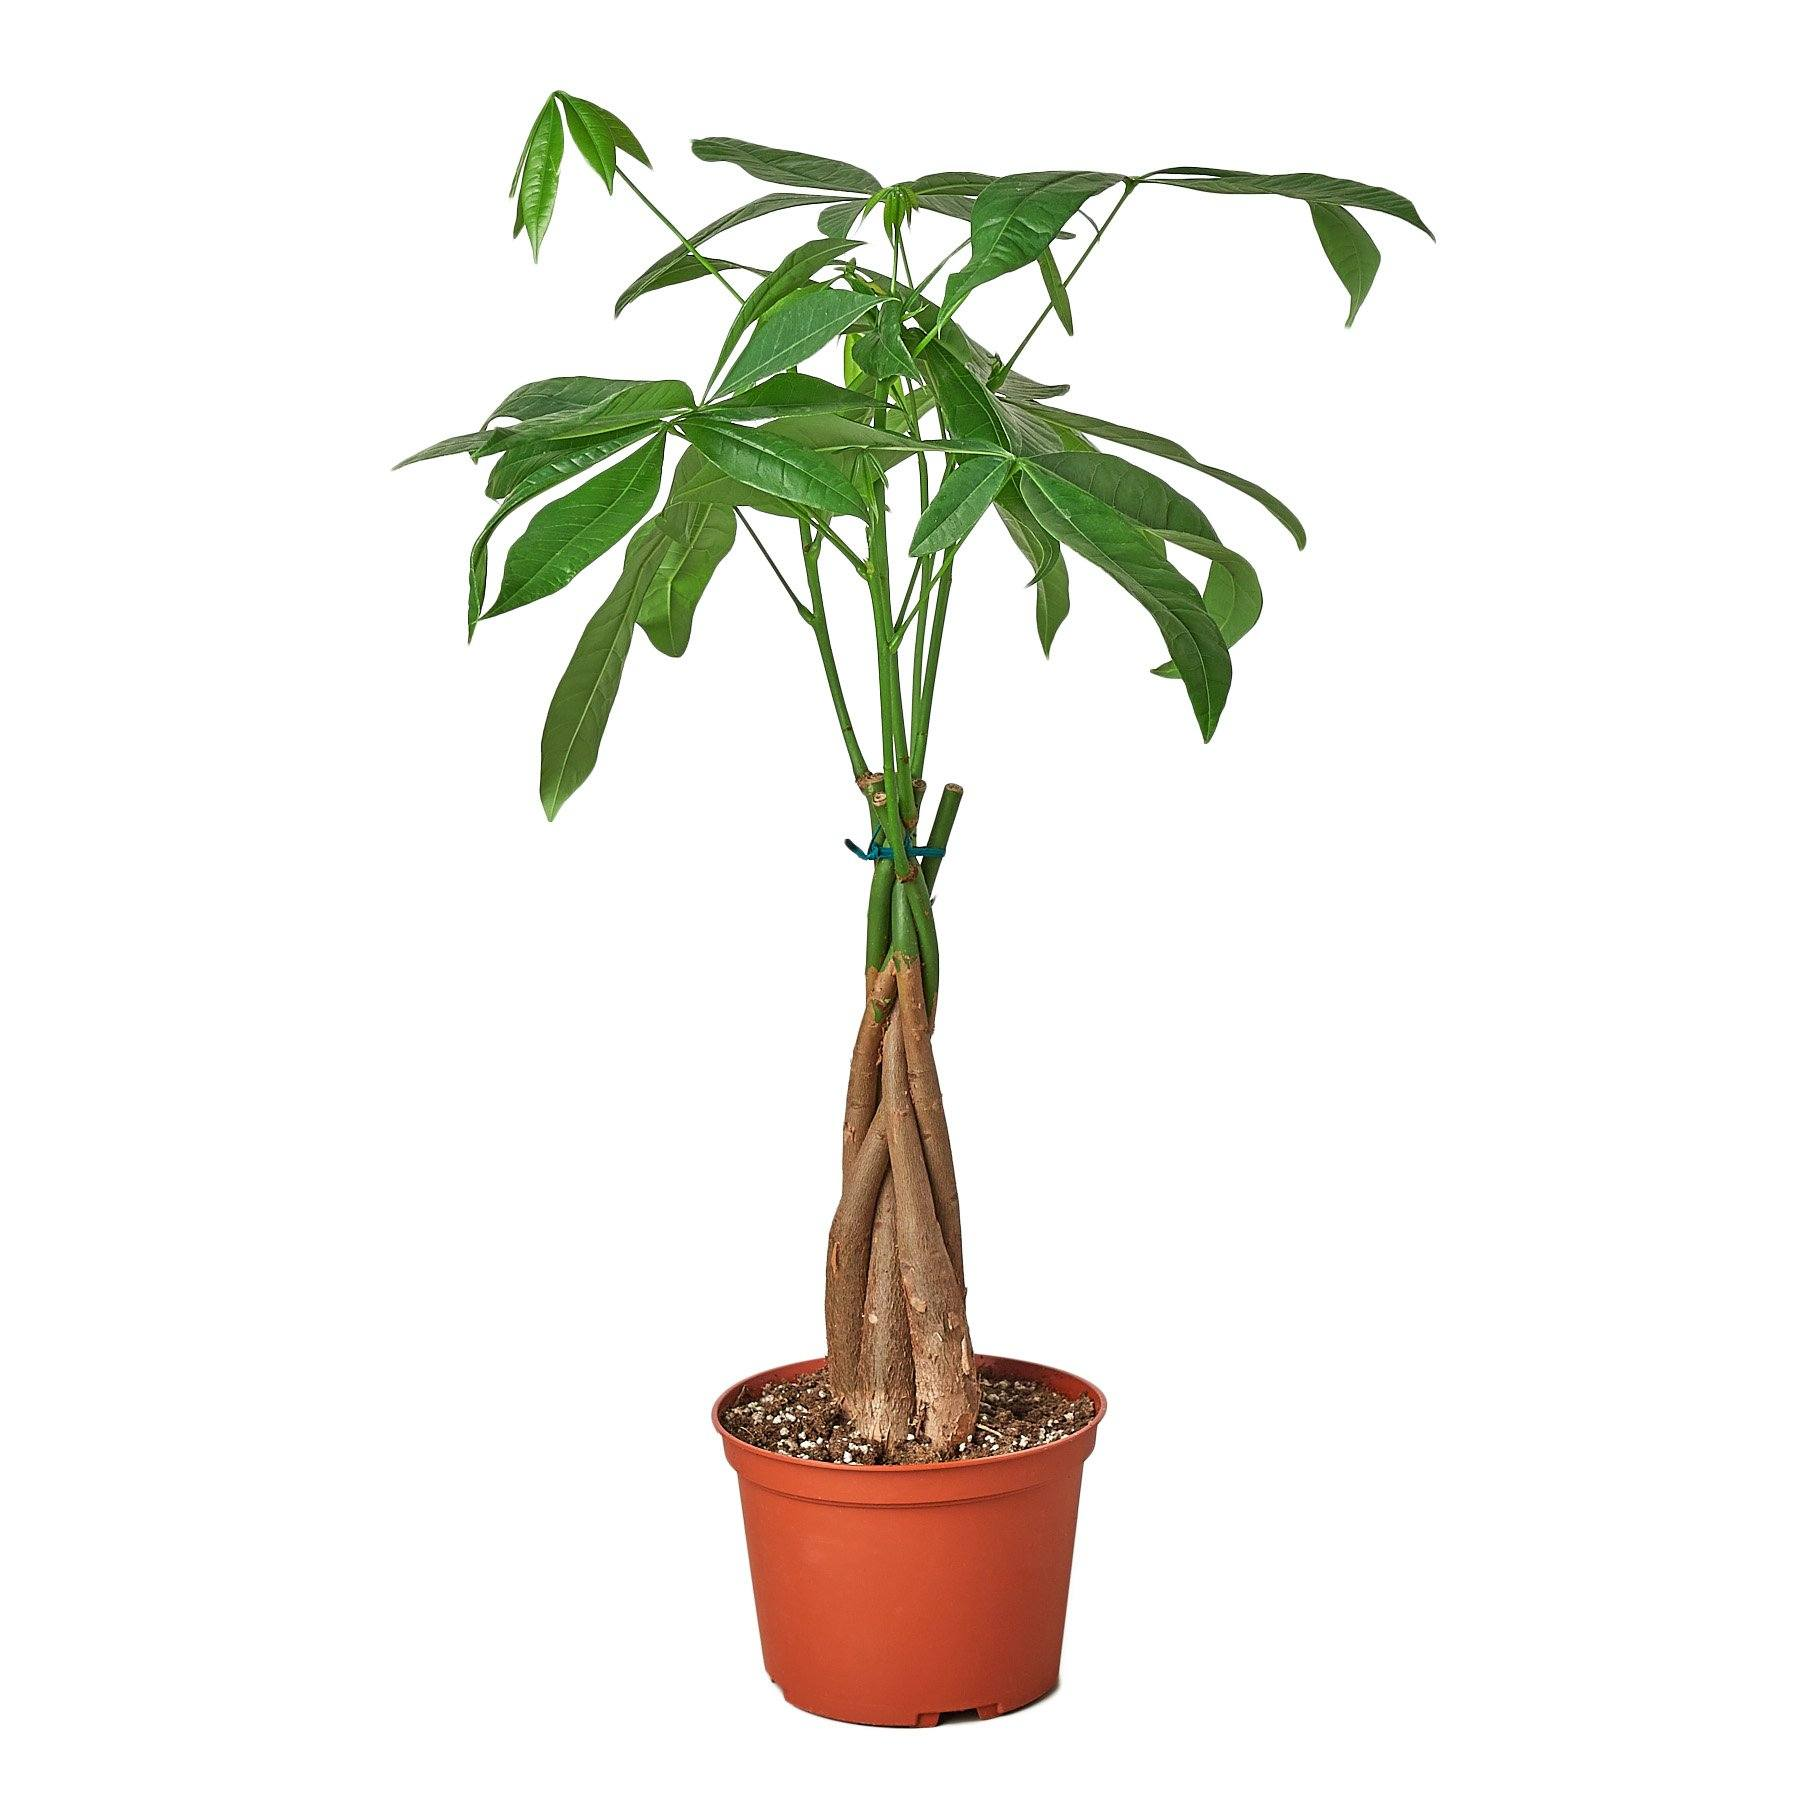 Money Tree 'Guiana Chestnut' Pachira Braid Indoor Plants House Plant Shop